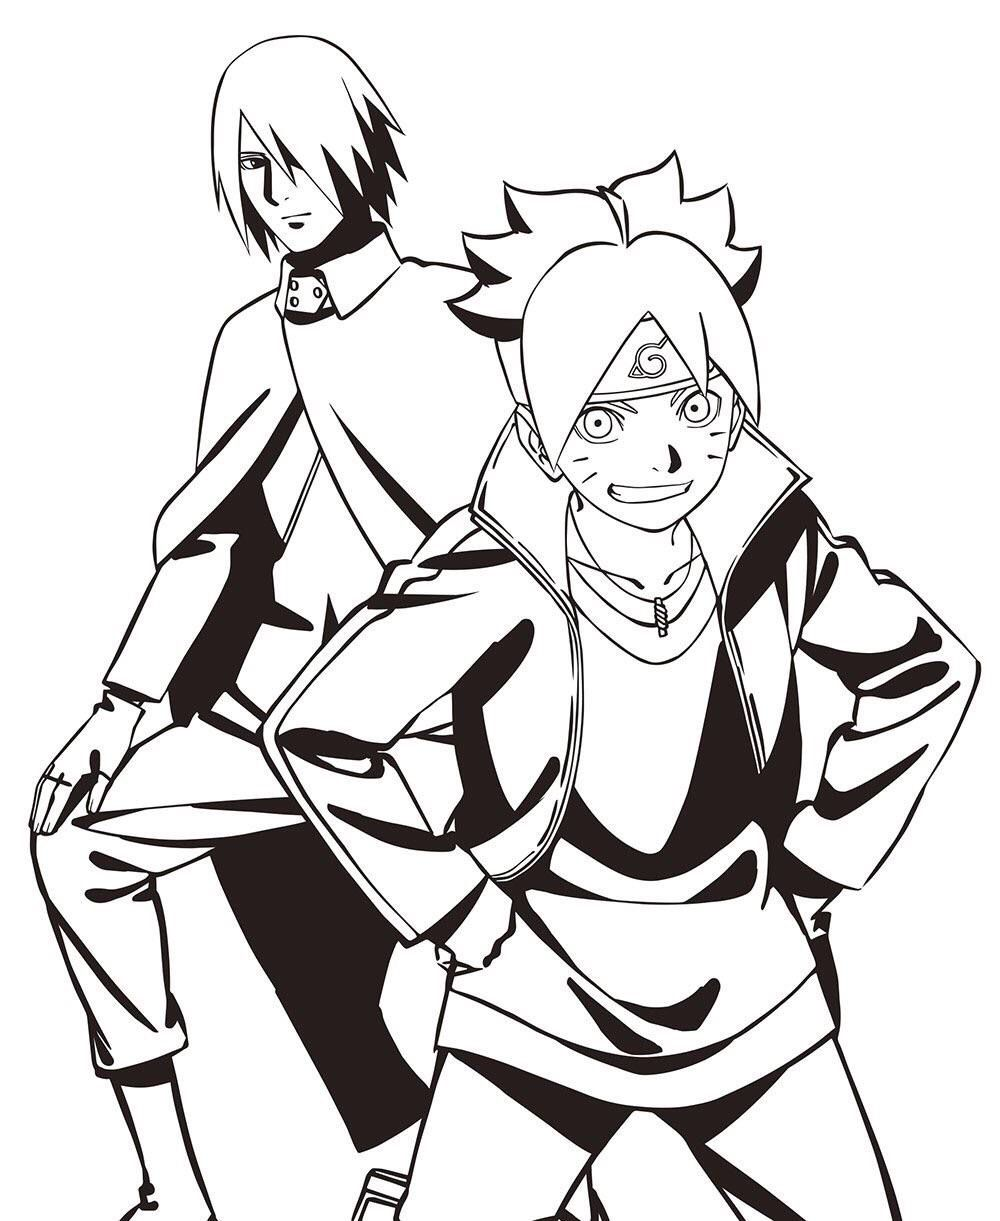 Pin by Breanna Monique on Narutoverse Anime, Boruto